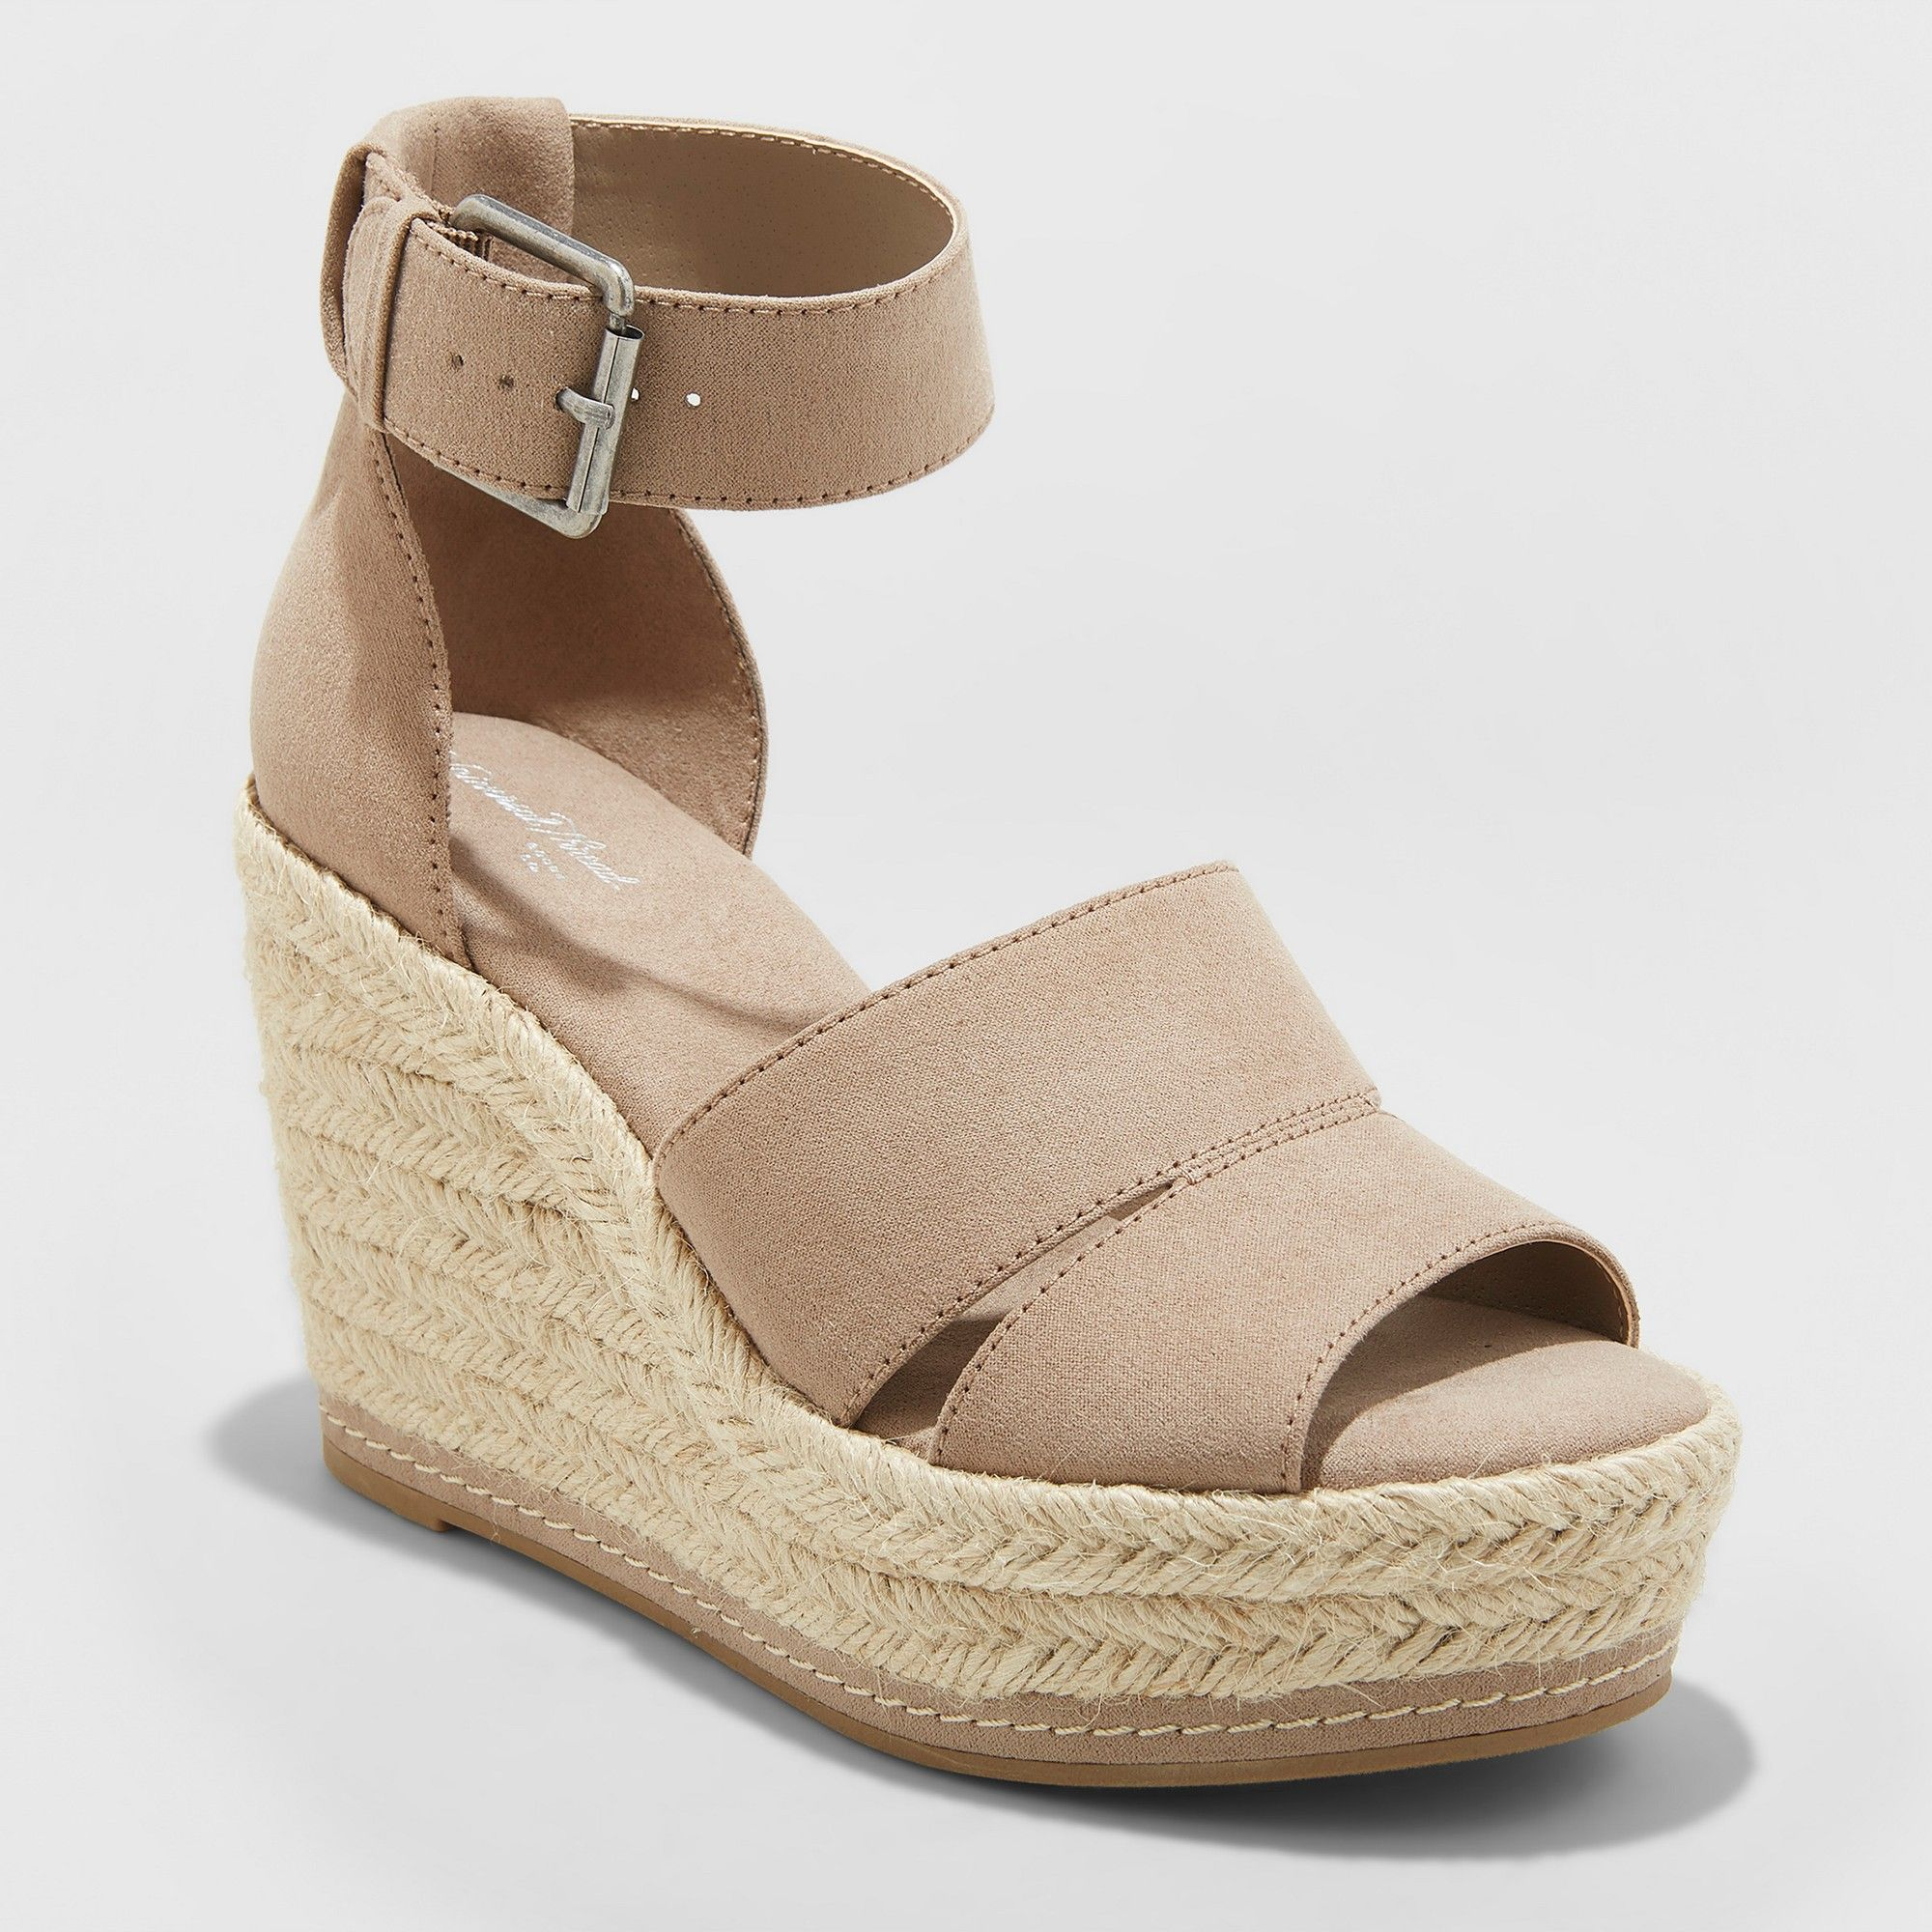 a7d1154bfa87 Women s Caroline Wide Width Microsuede Ankle Strap Espadrille Wedge -  Universal Thread Taupe (Brown) 12W